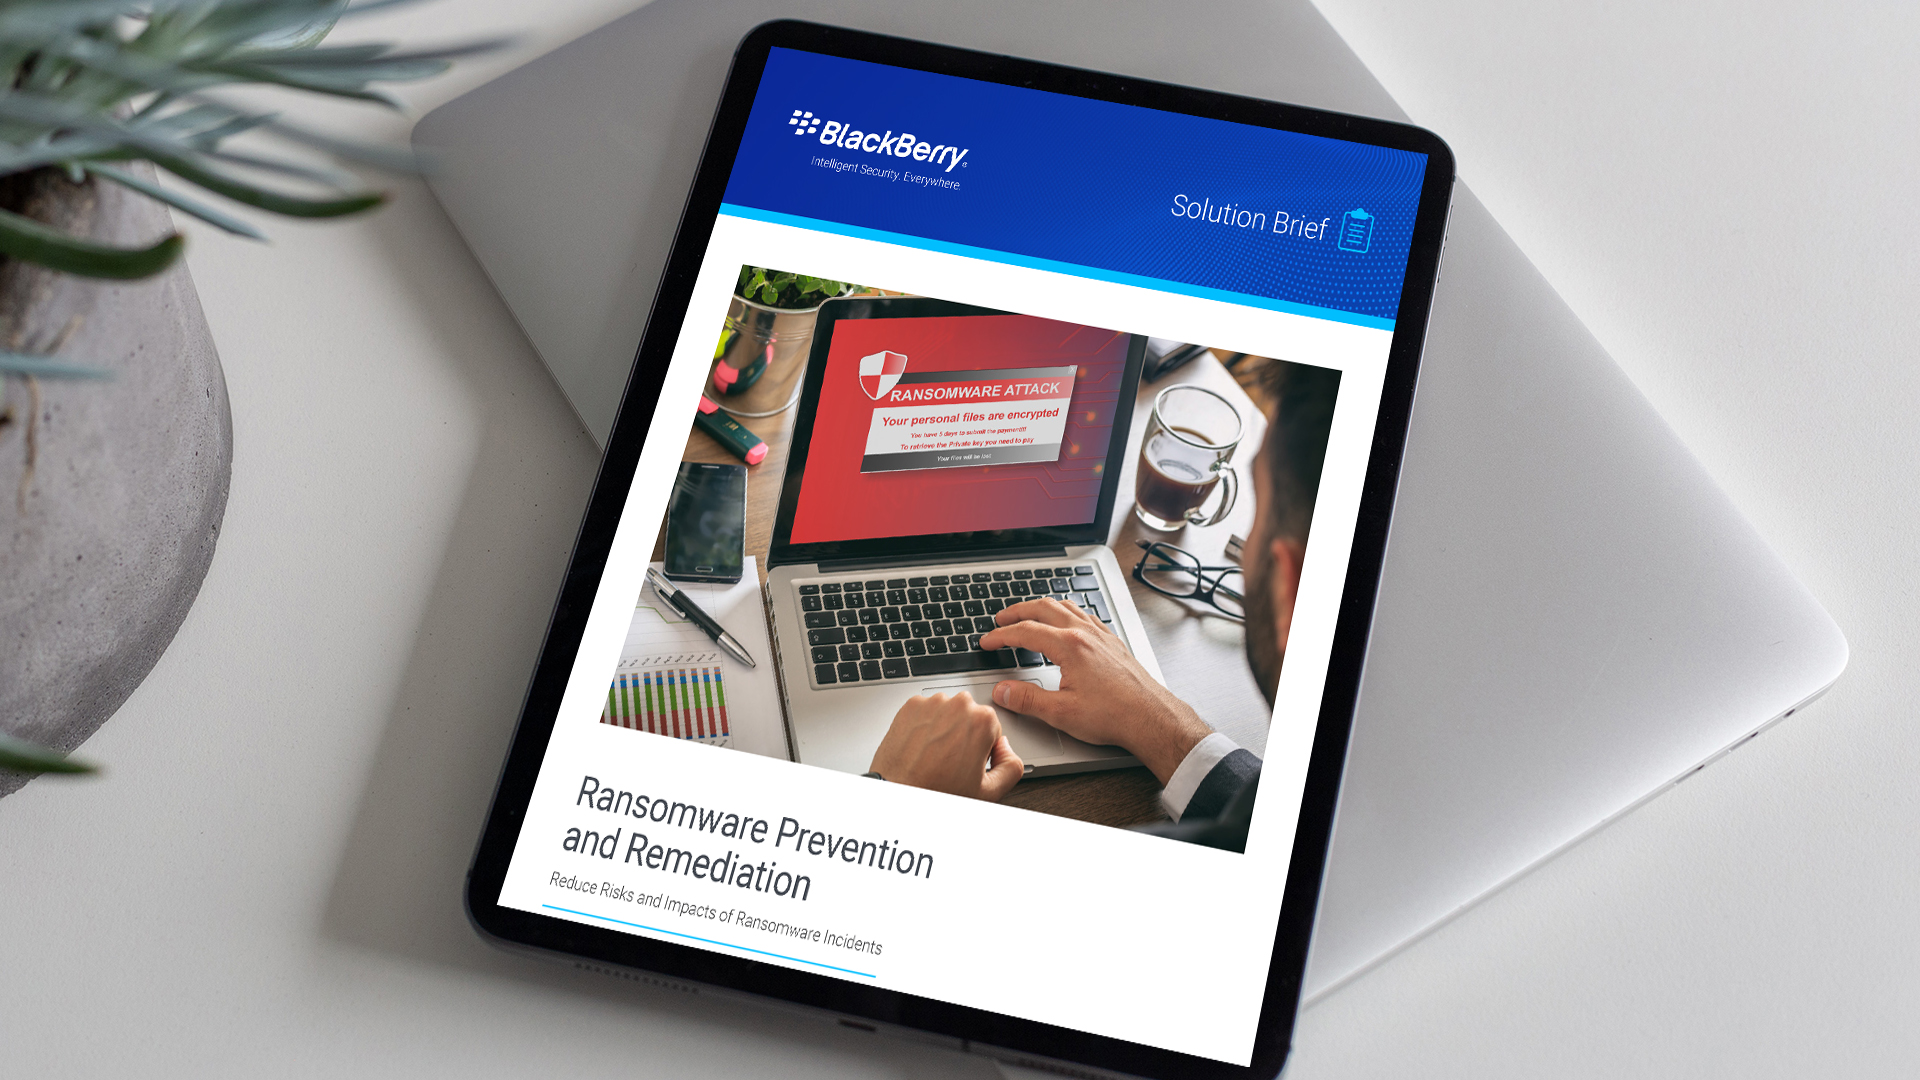 Ransomware remediation and prevention